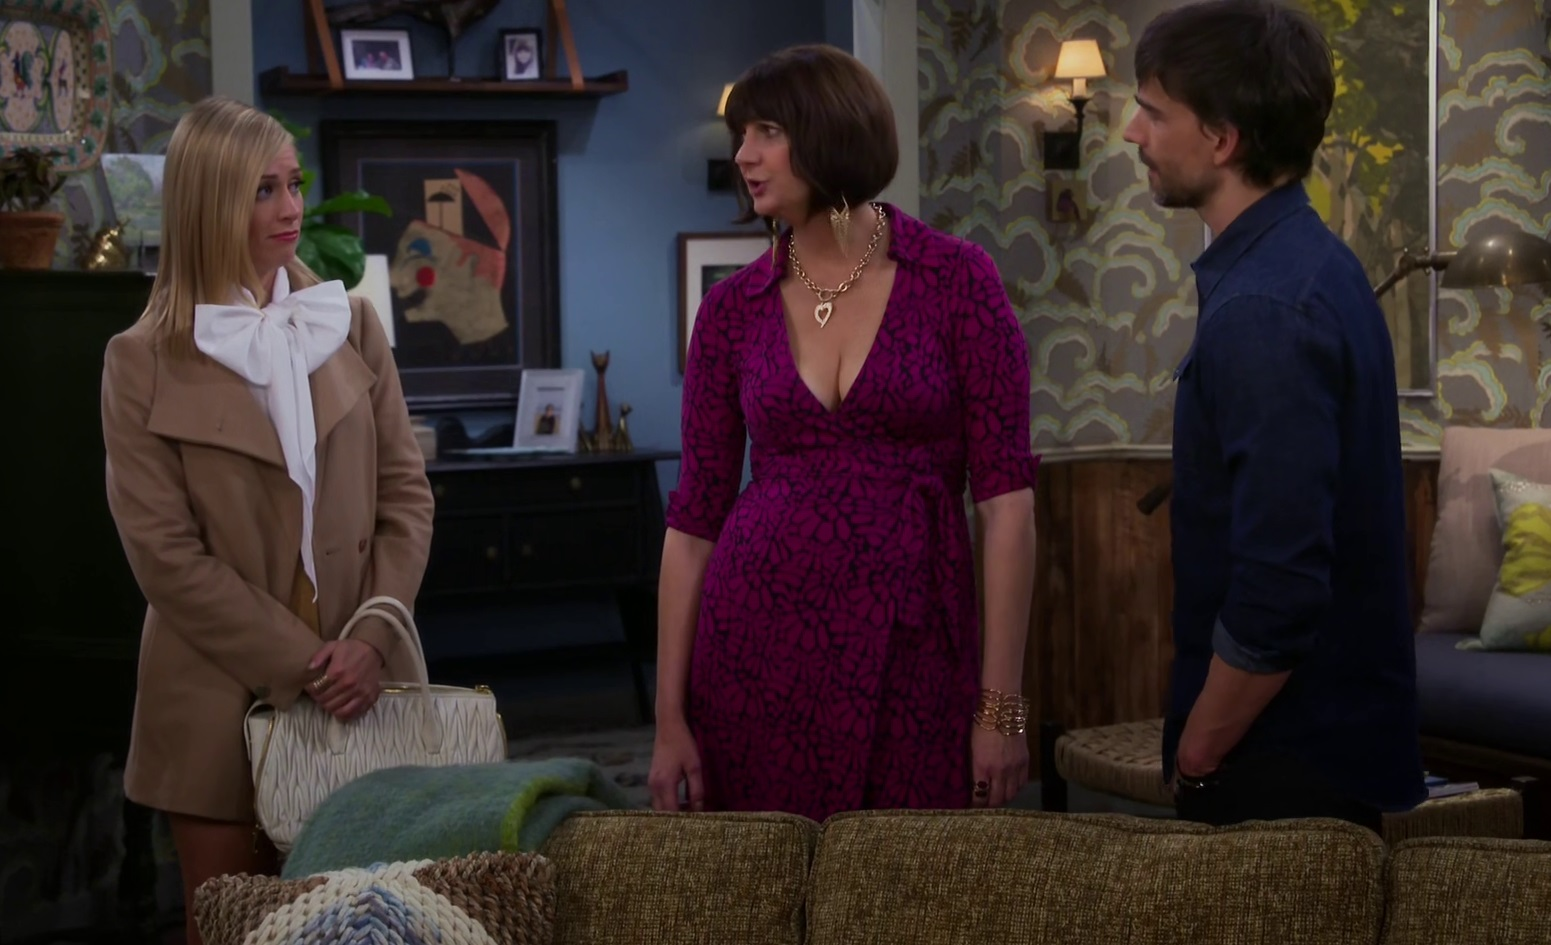 Christopher Gorham, Kerri Kenney, and Beth Behrs in 2 Broke Girls (2011)